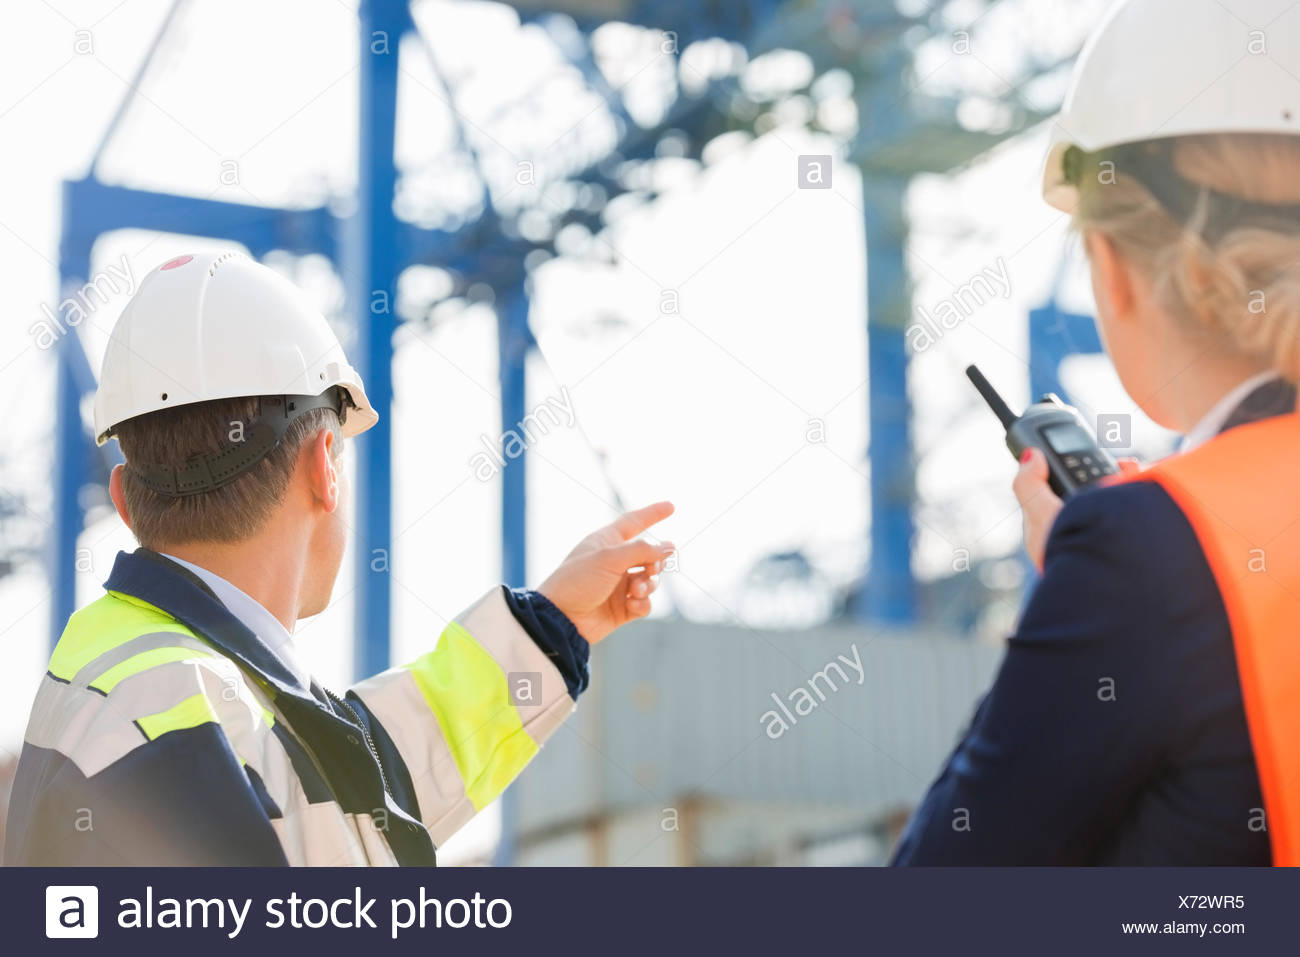 Male and female workers working in shipping yard - Stock Image